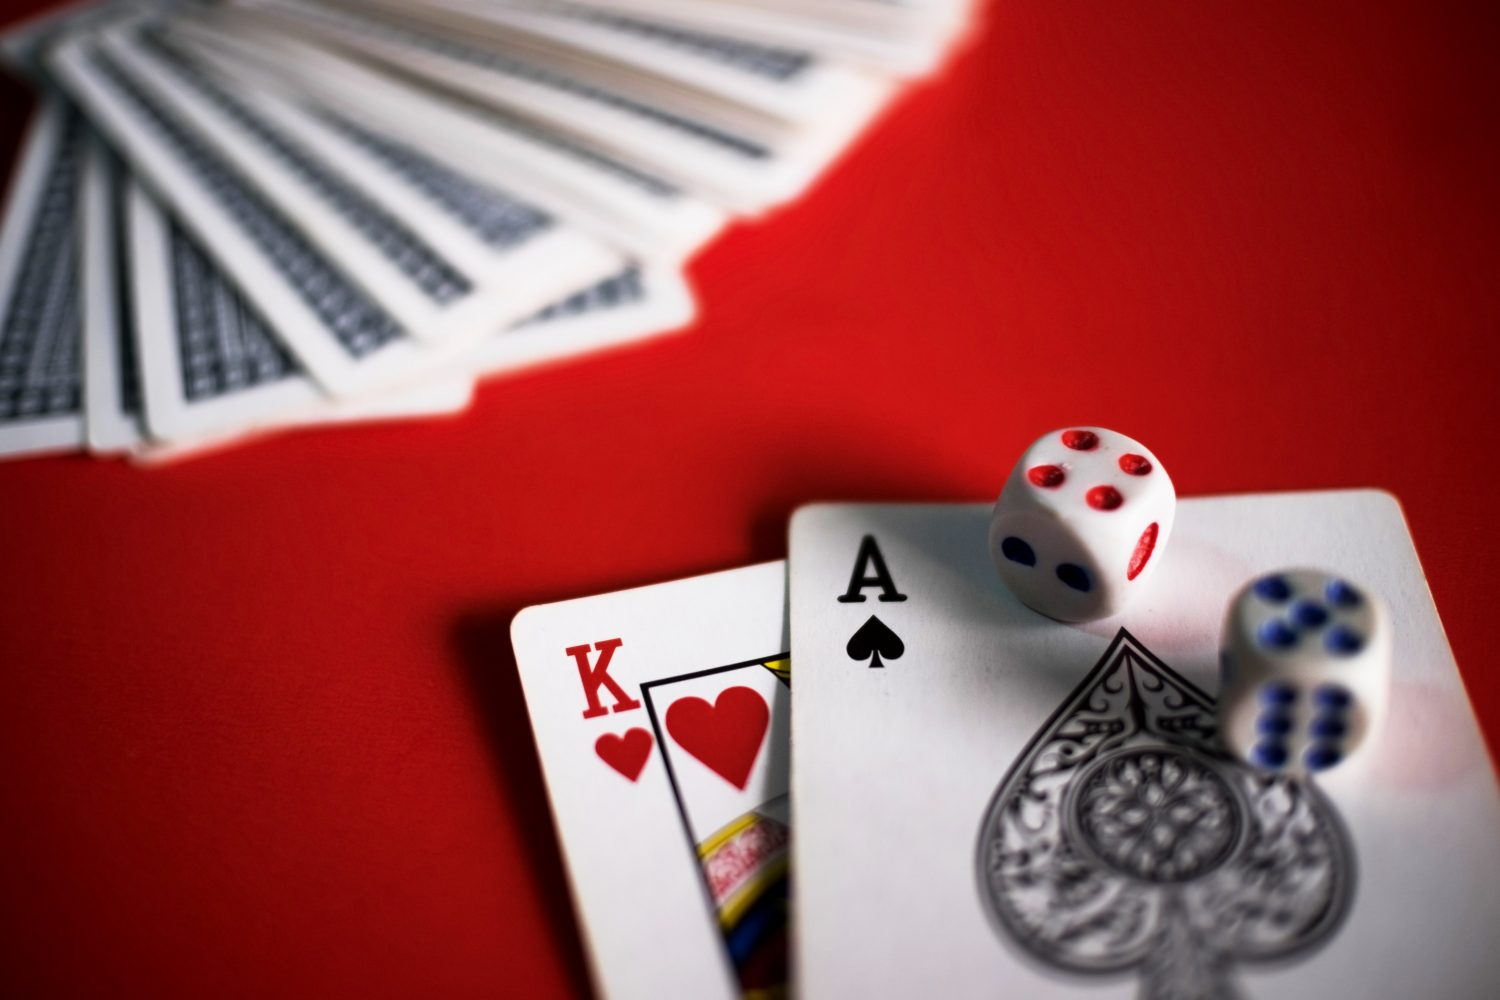 buy-online-gambler-list-database